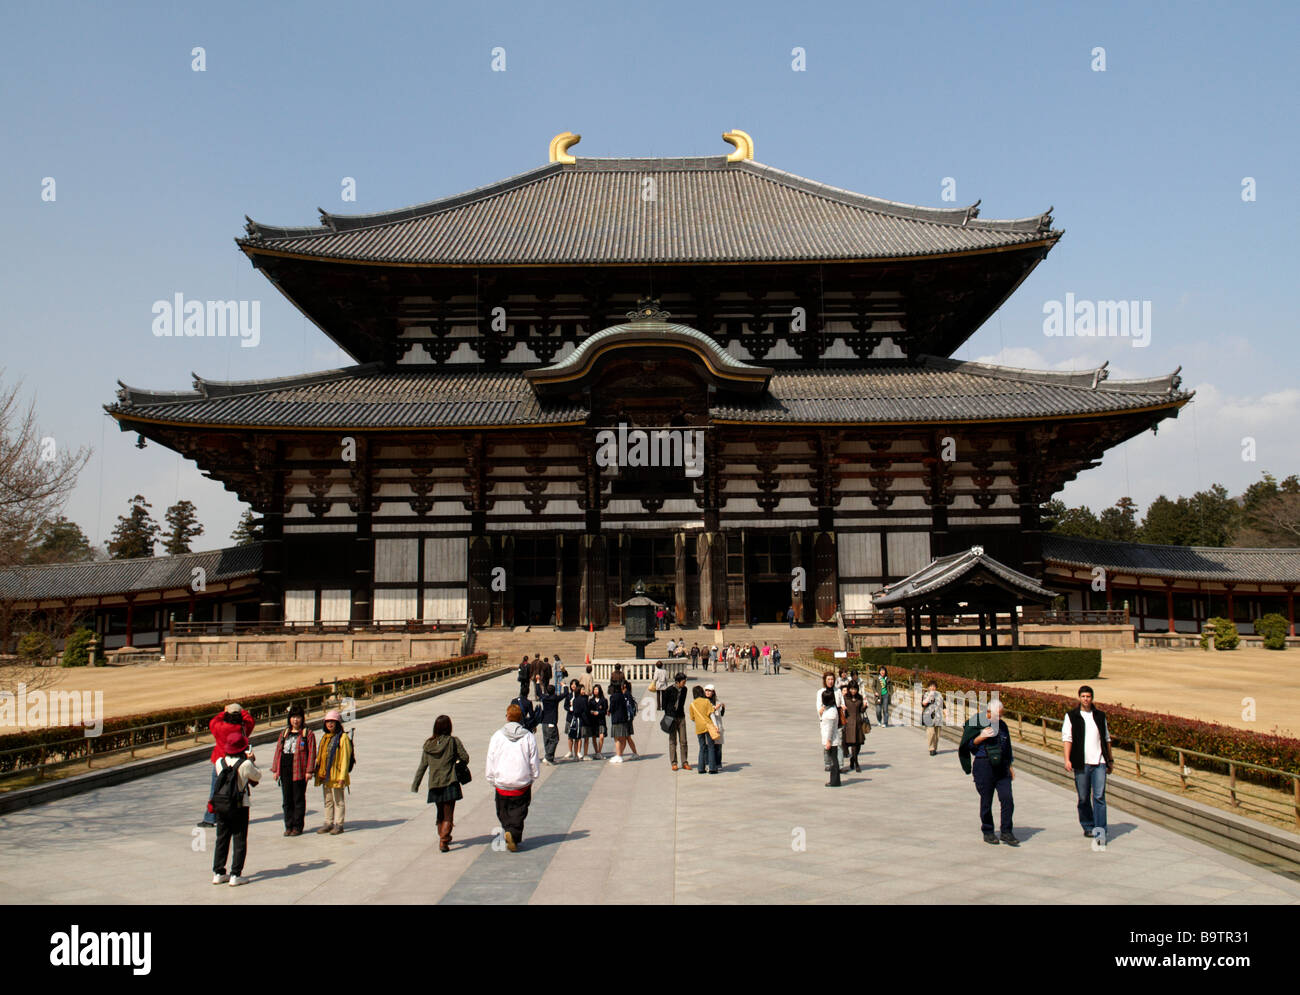 The Daibutsu-den Hall - the largest wooden building in the world and part of the Todai-ji temple complex in Nara, - Stock Image